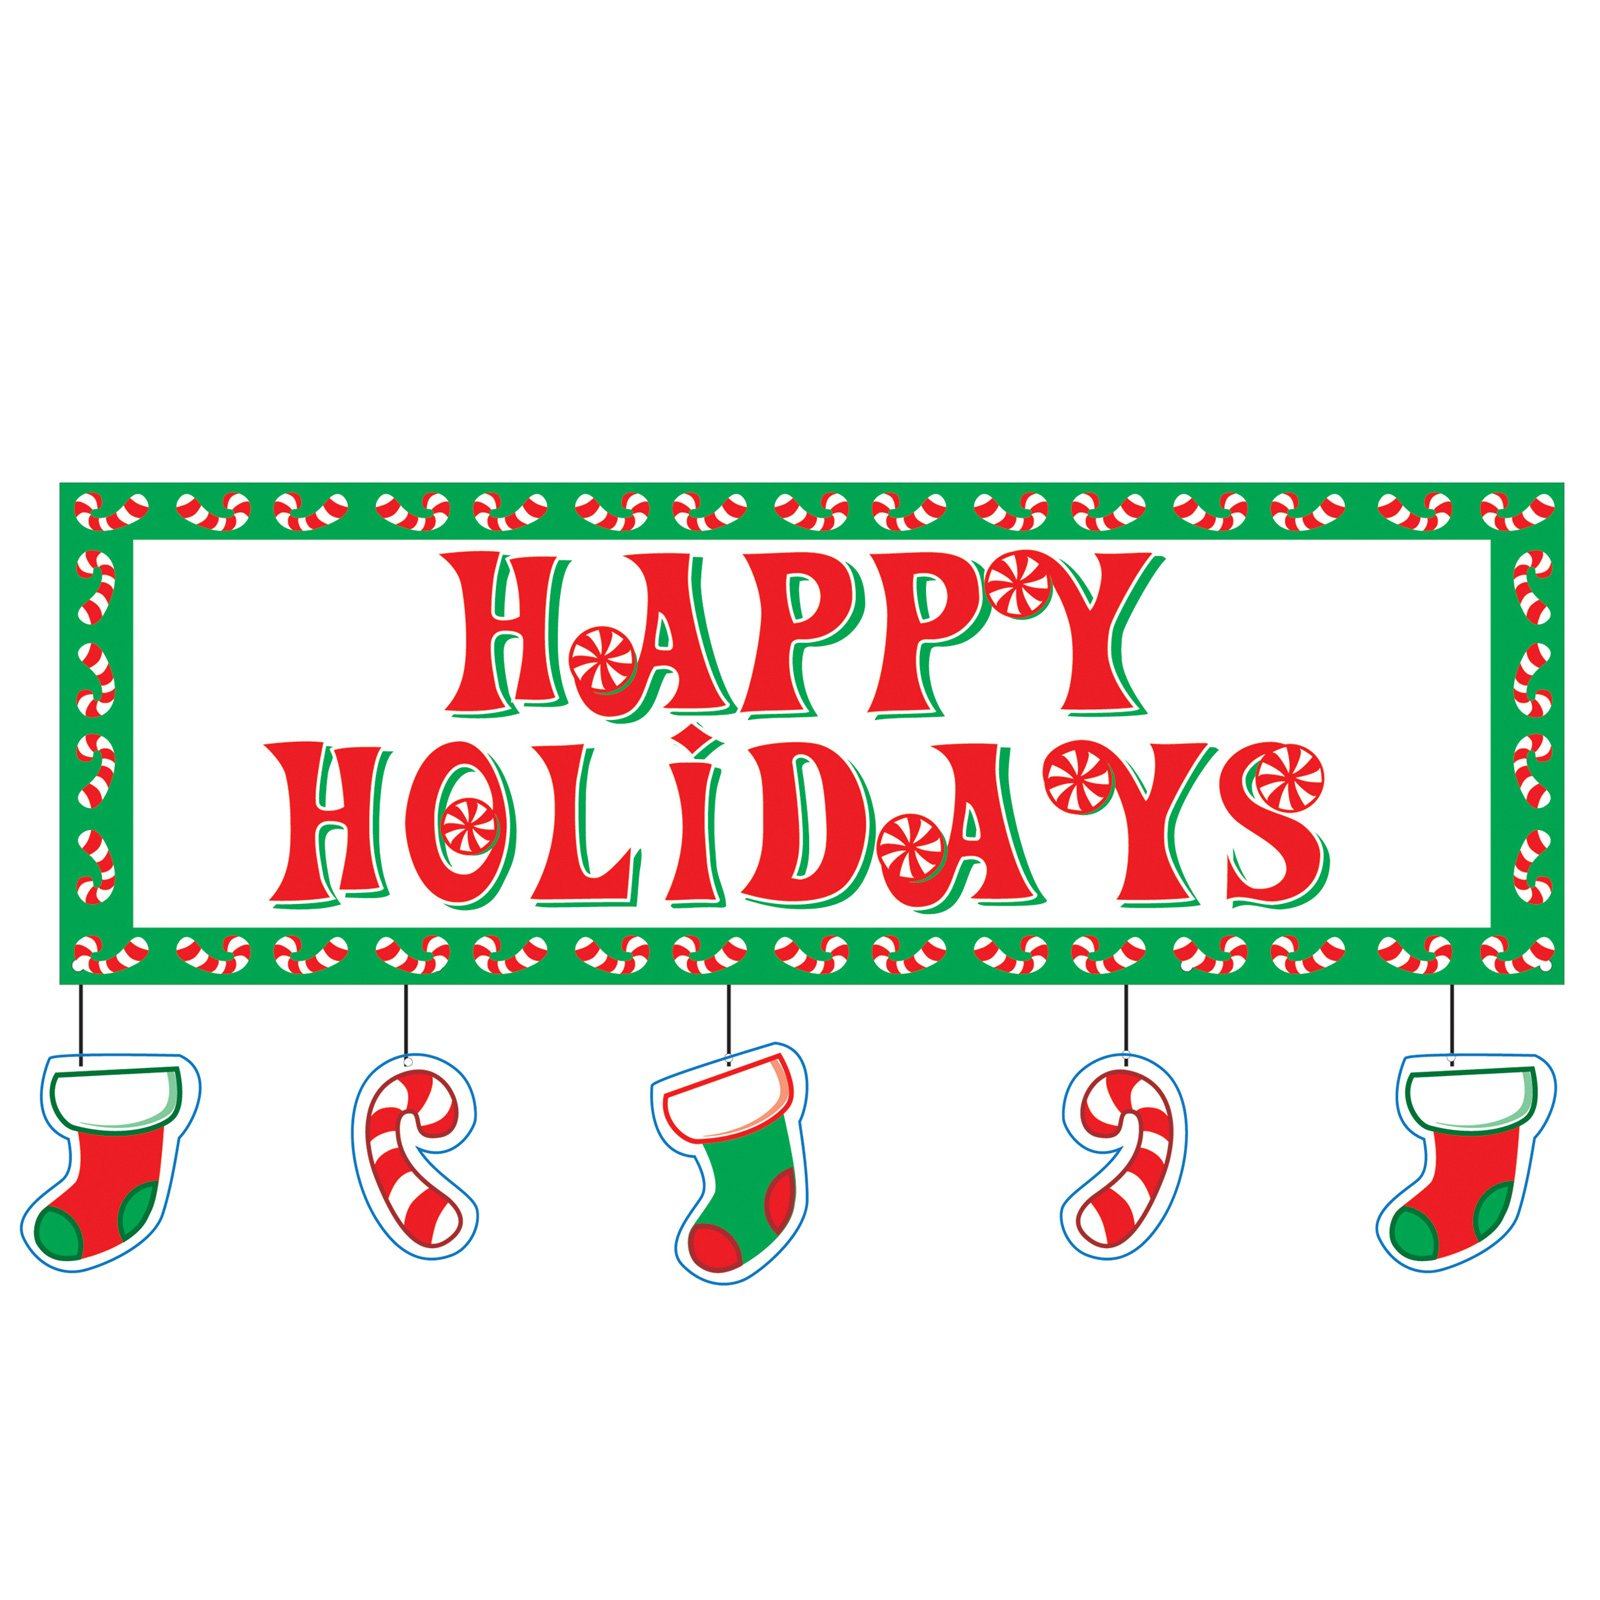 Word clipart happy holiday Christmas  Happy 3d Holidays